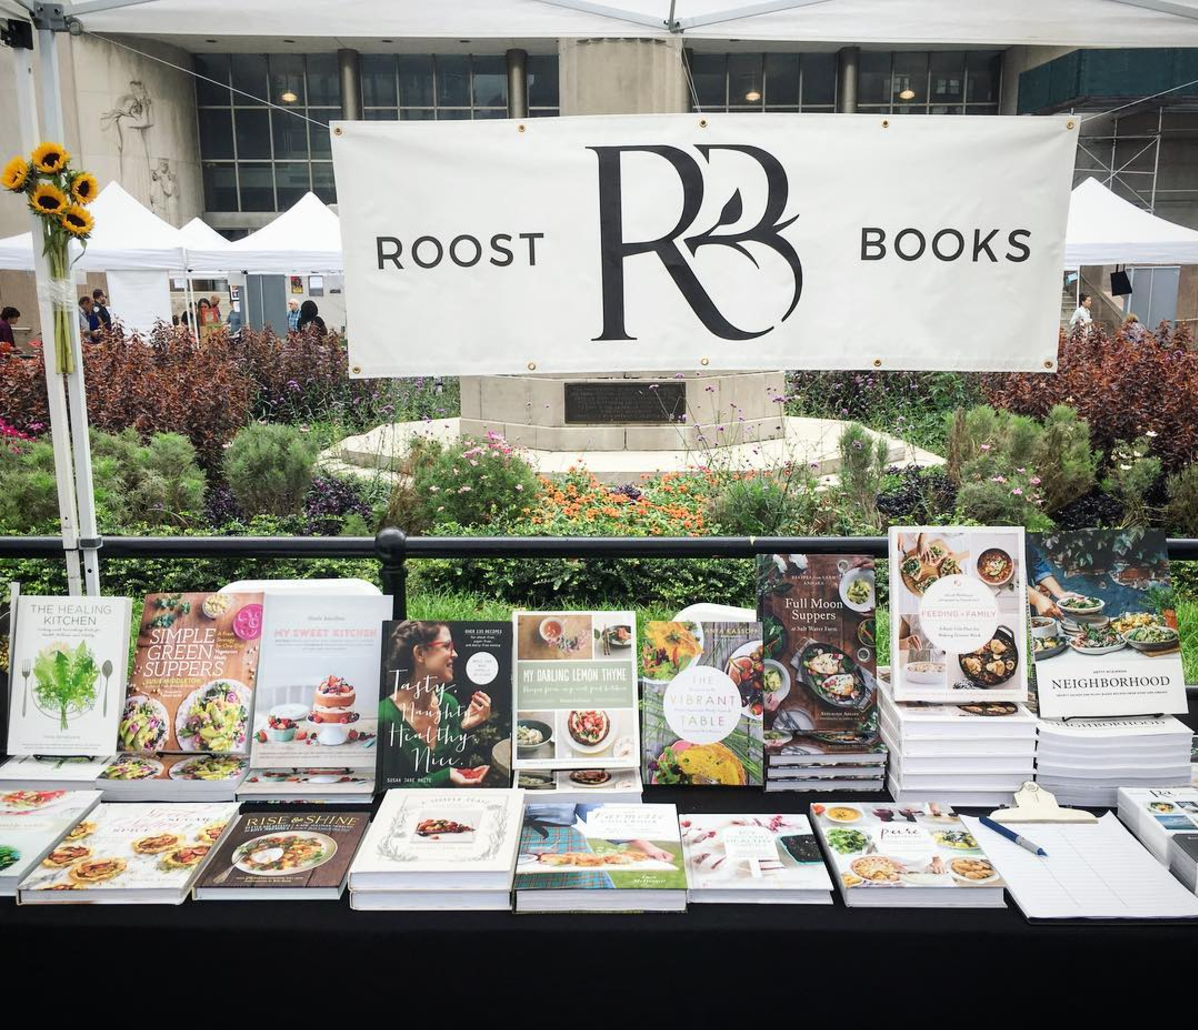 Roost Books at the Brooklyn Book Festival